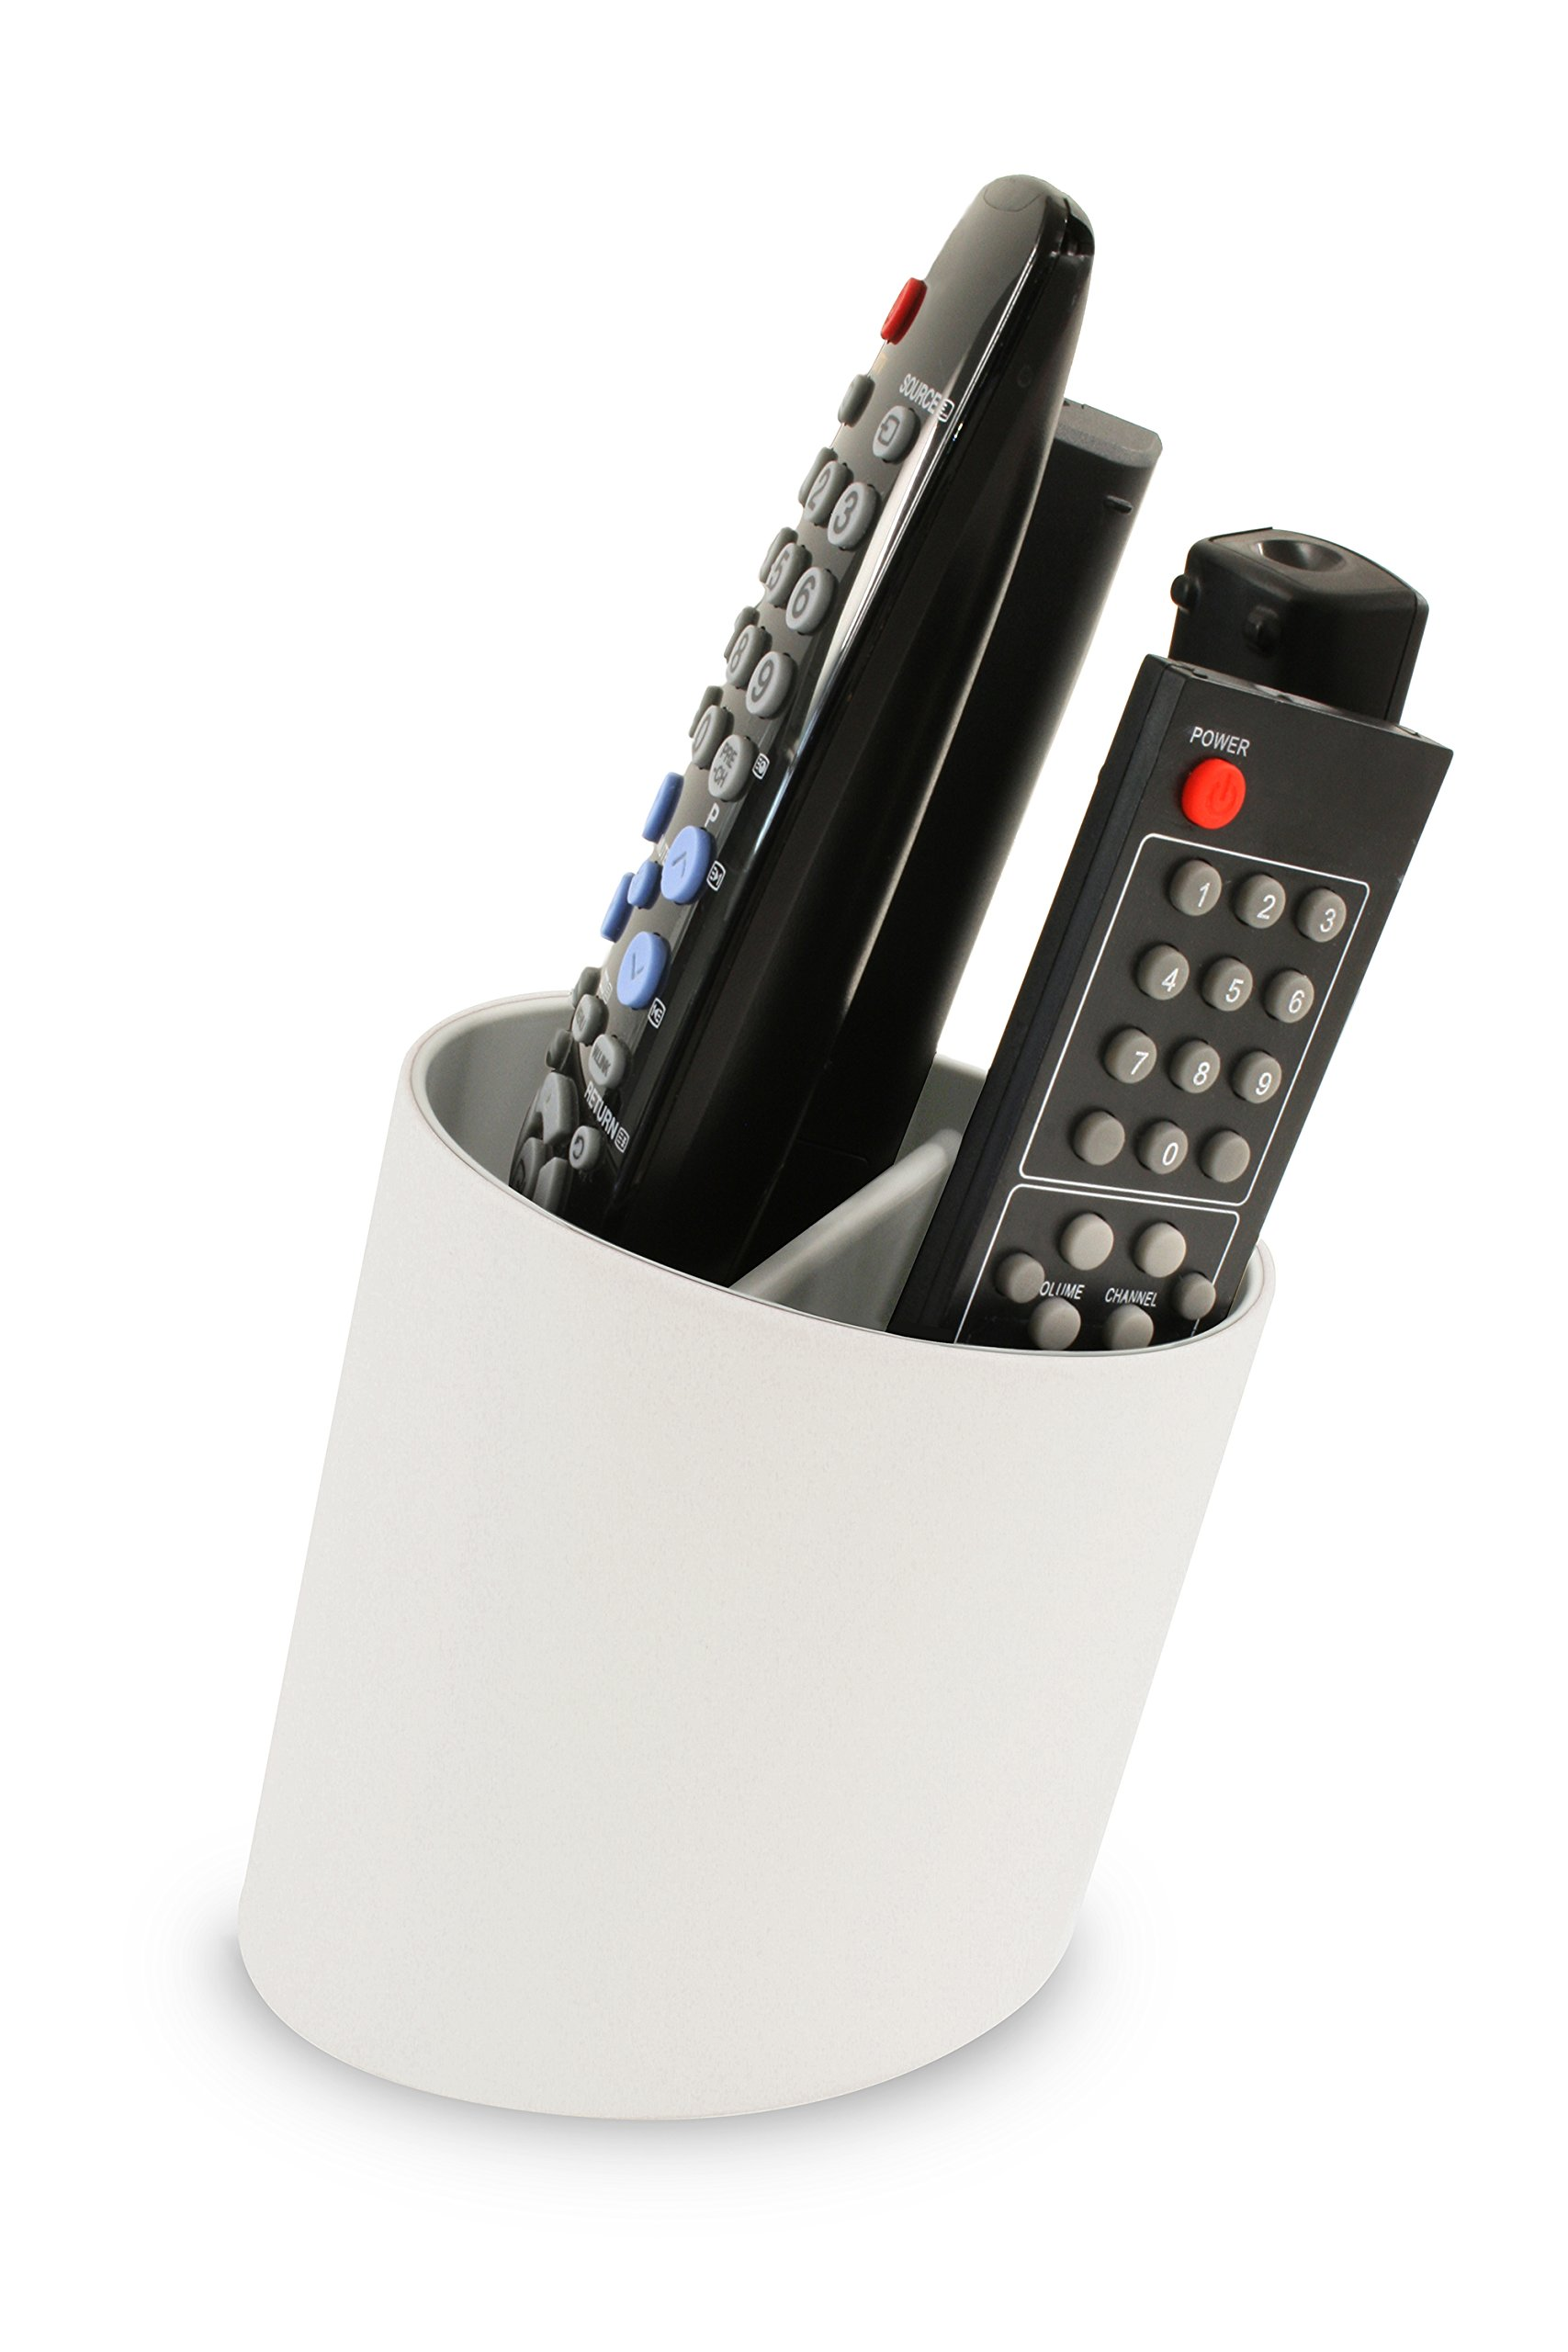 j-me Tilt Remote Control Tidy Remote Holder and TV Remote Organizer (White/Grey)